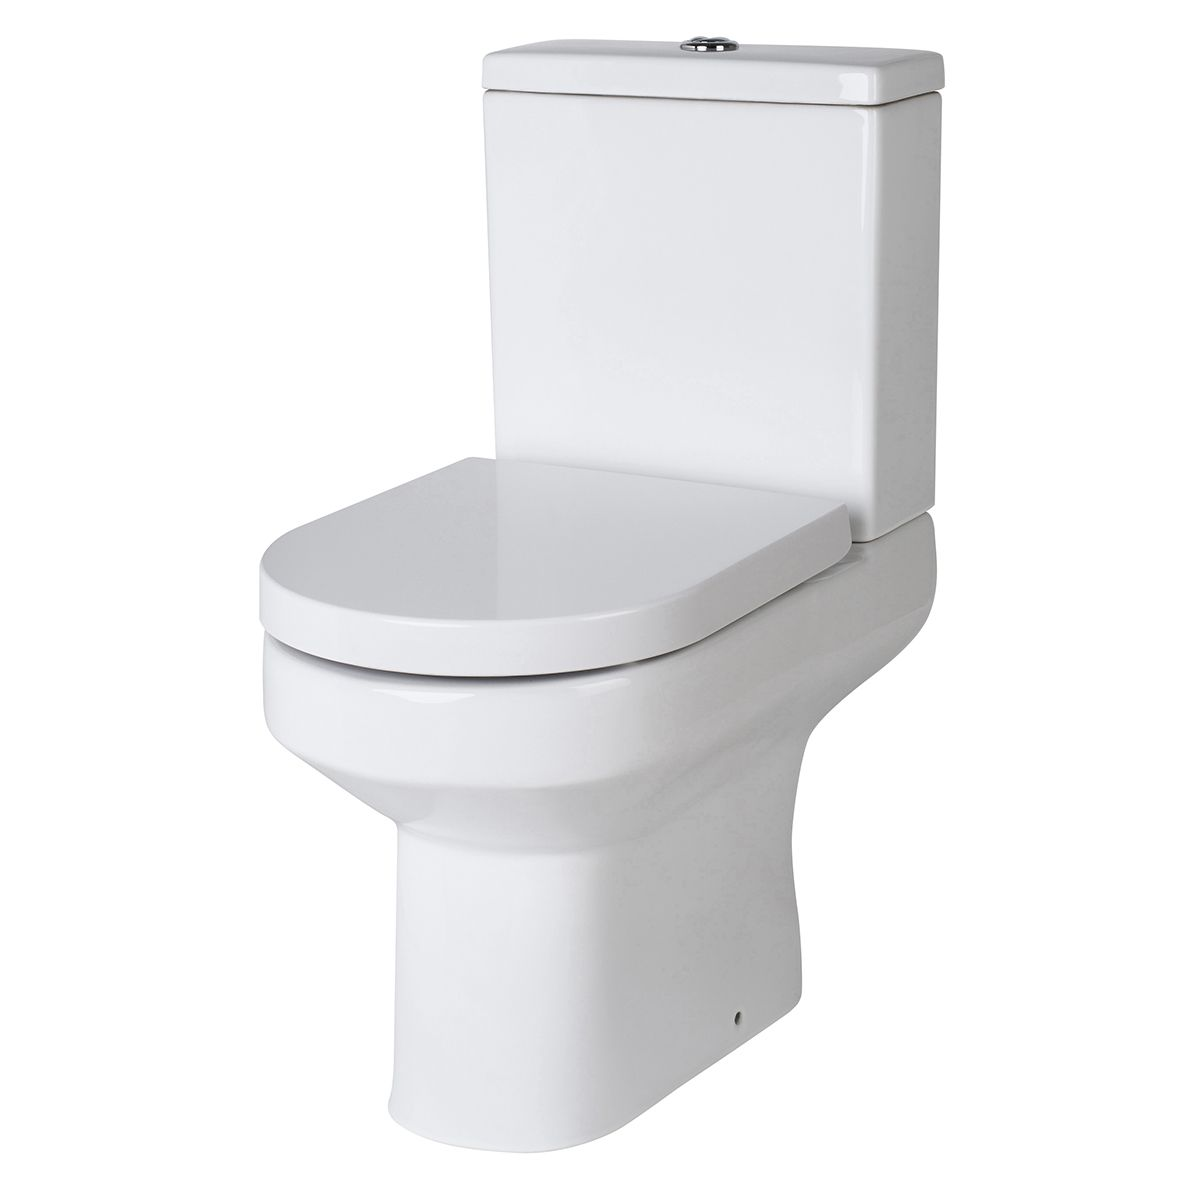 Nuie Harmony Close Coupled Pan w/ Cistern and Soft Close Seat